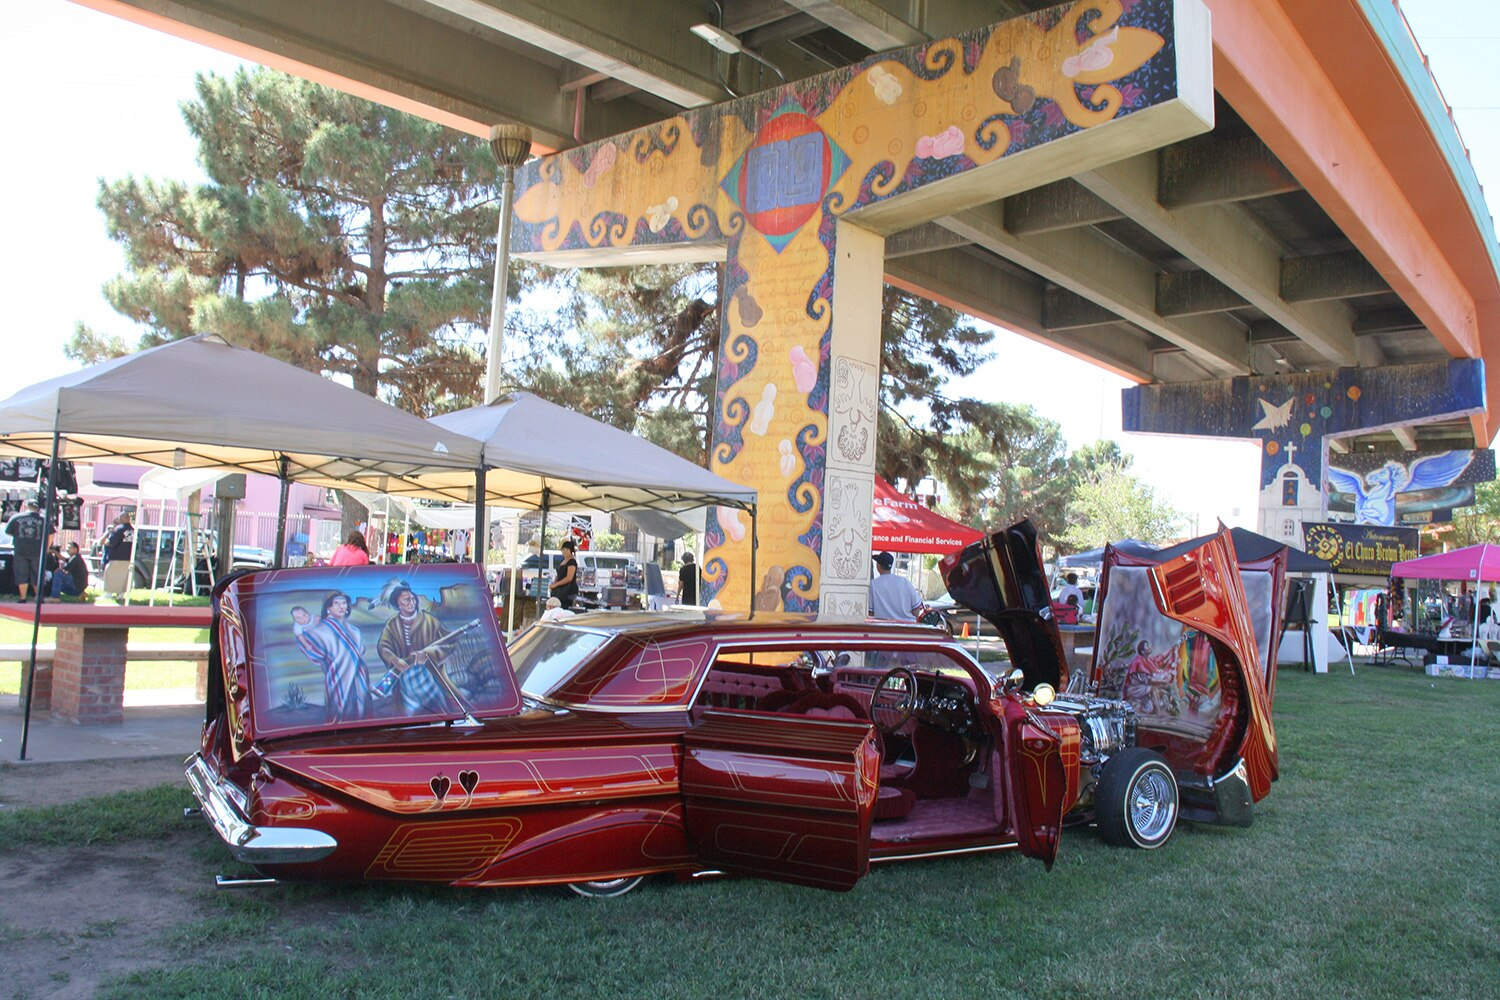 9th-annual-chicano-art-and-car-show-murals-promo